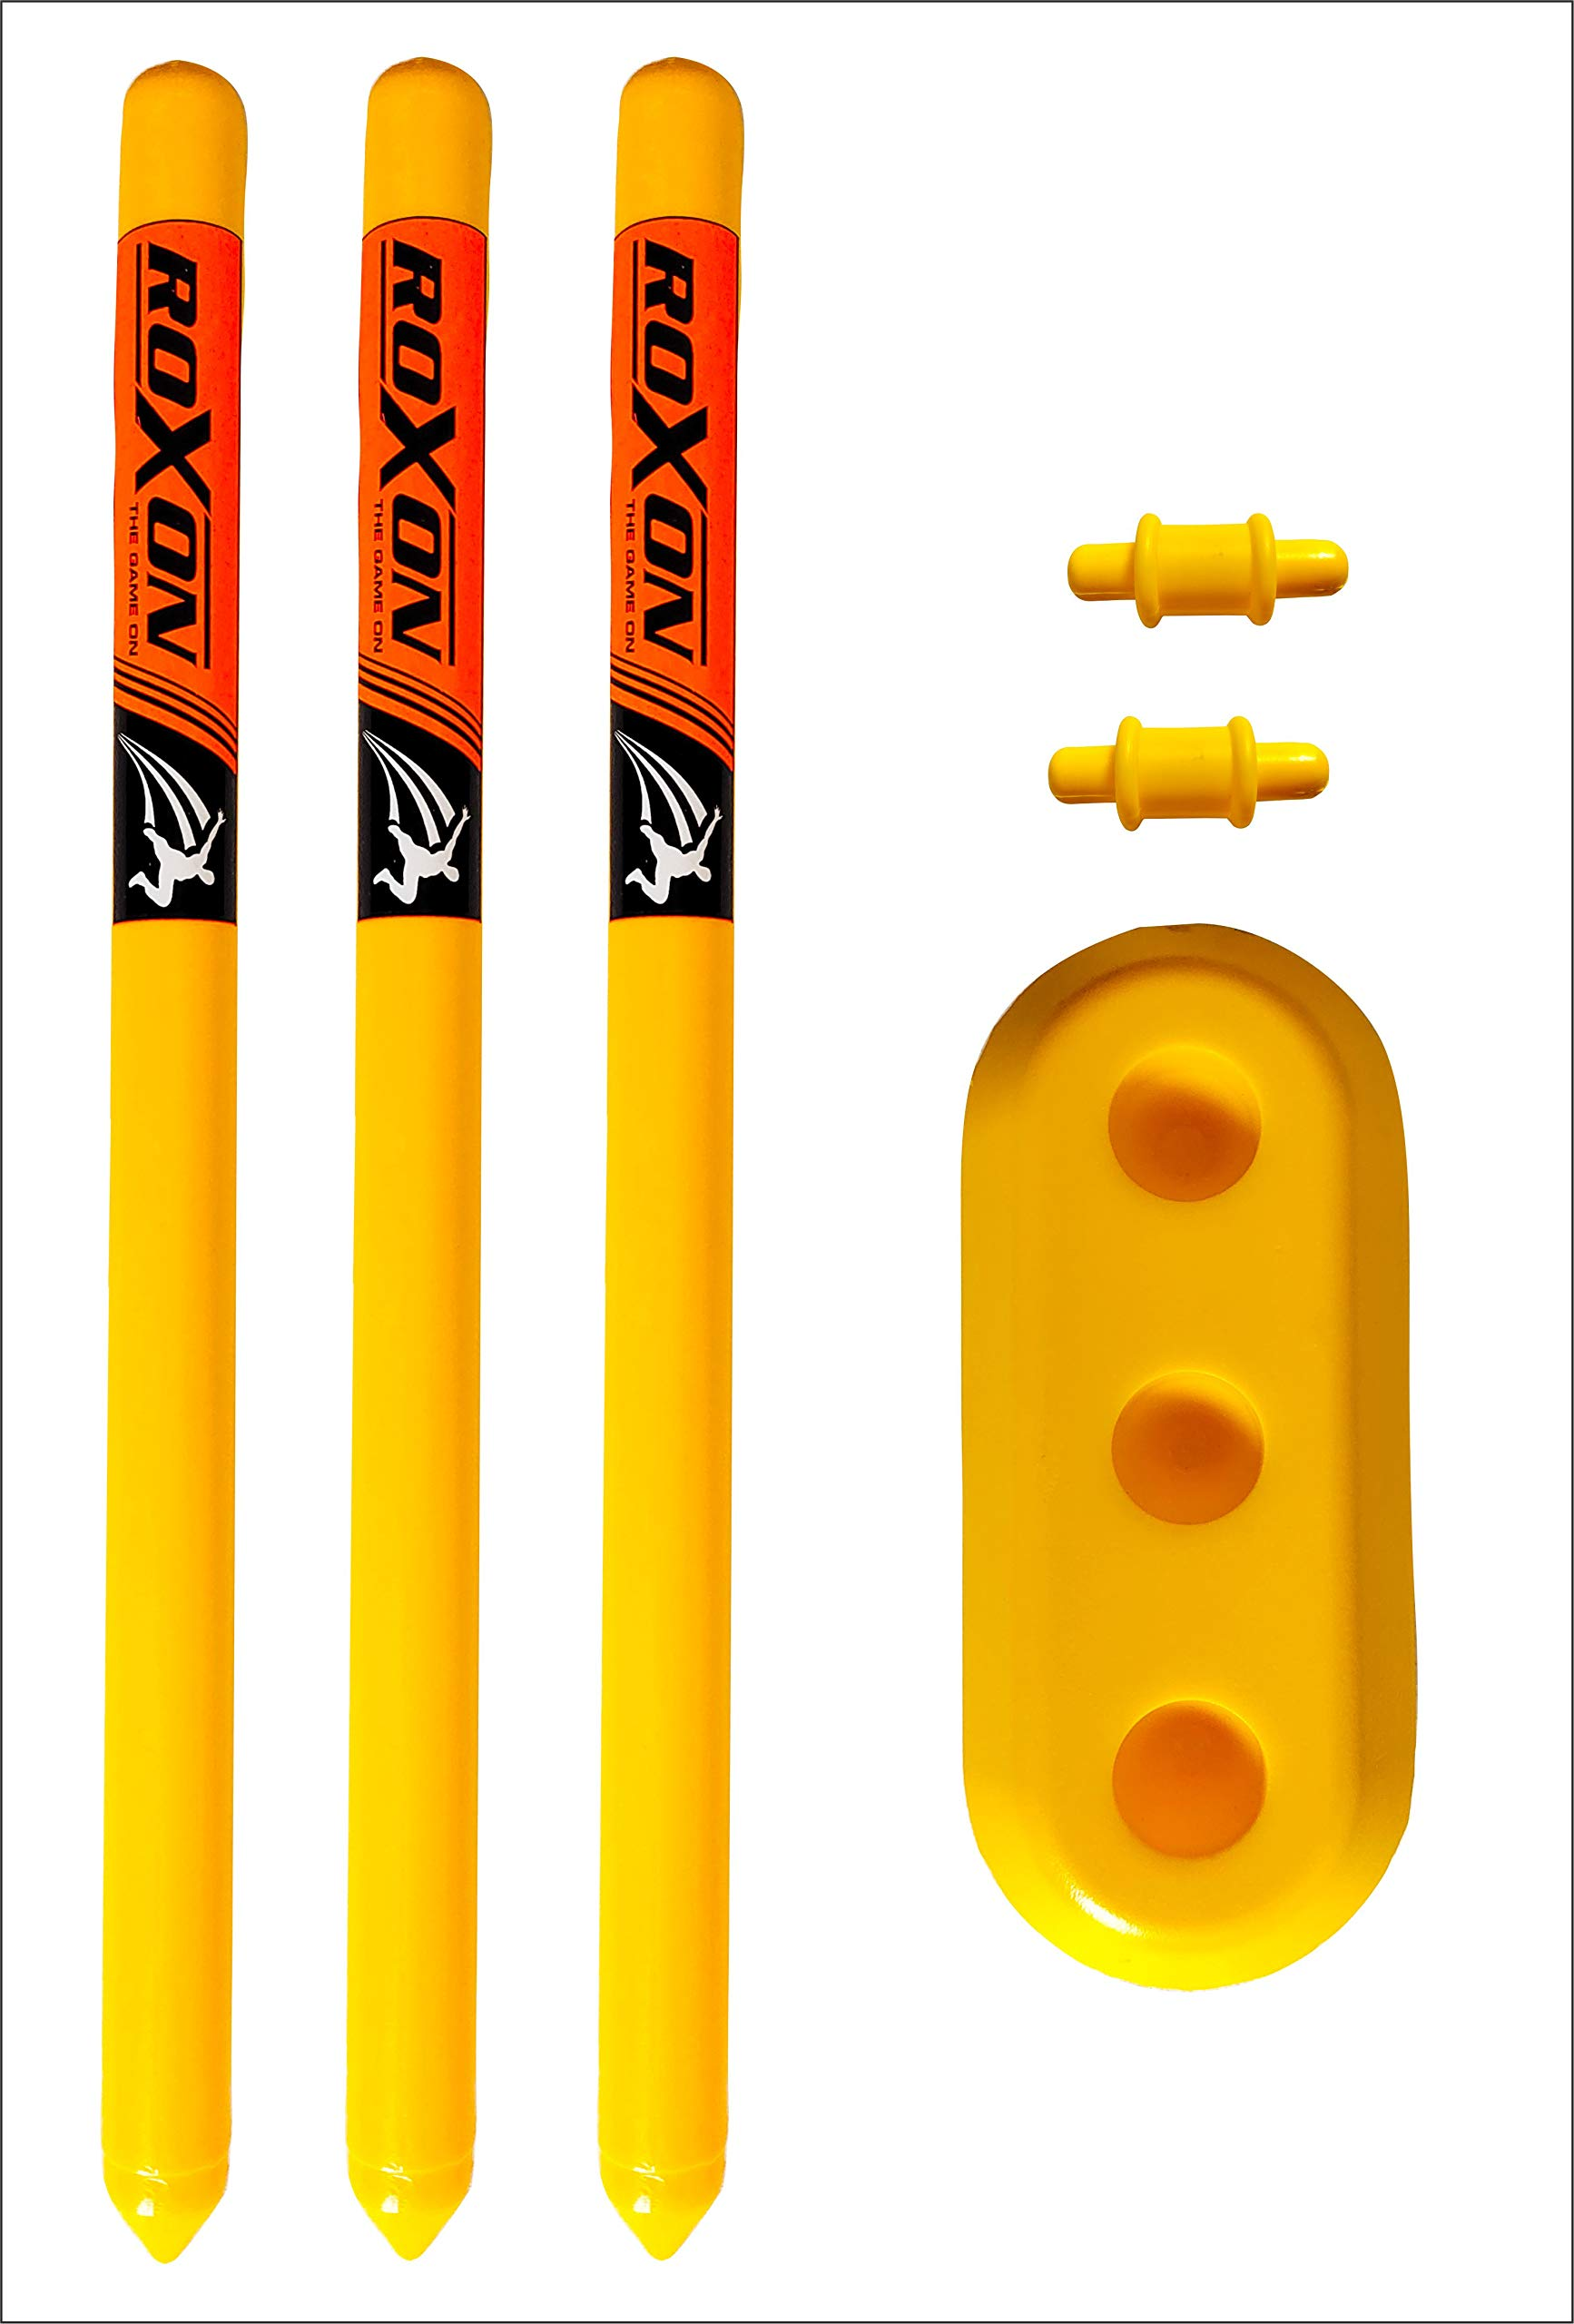 ROXON Hard Plastic Cricket Wickets Set(3 Piece Wickets, 2 Bails,1 Piece Base) (24'' Wickets Length for 3-8 Years Juniors